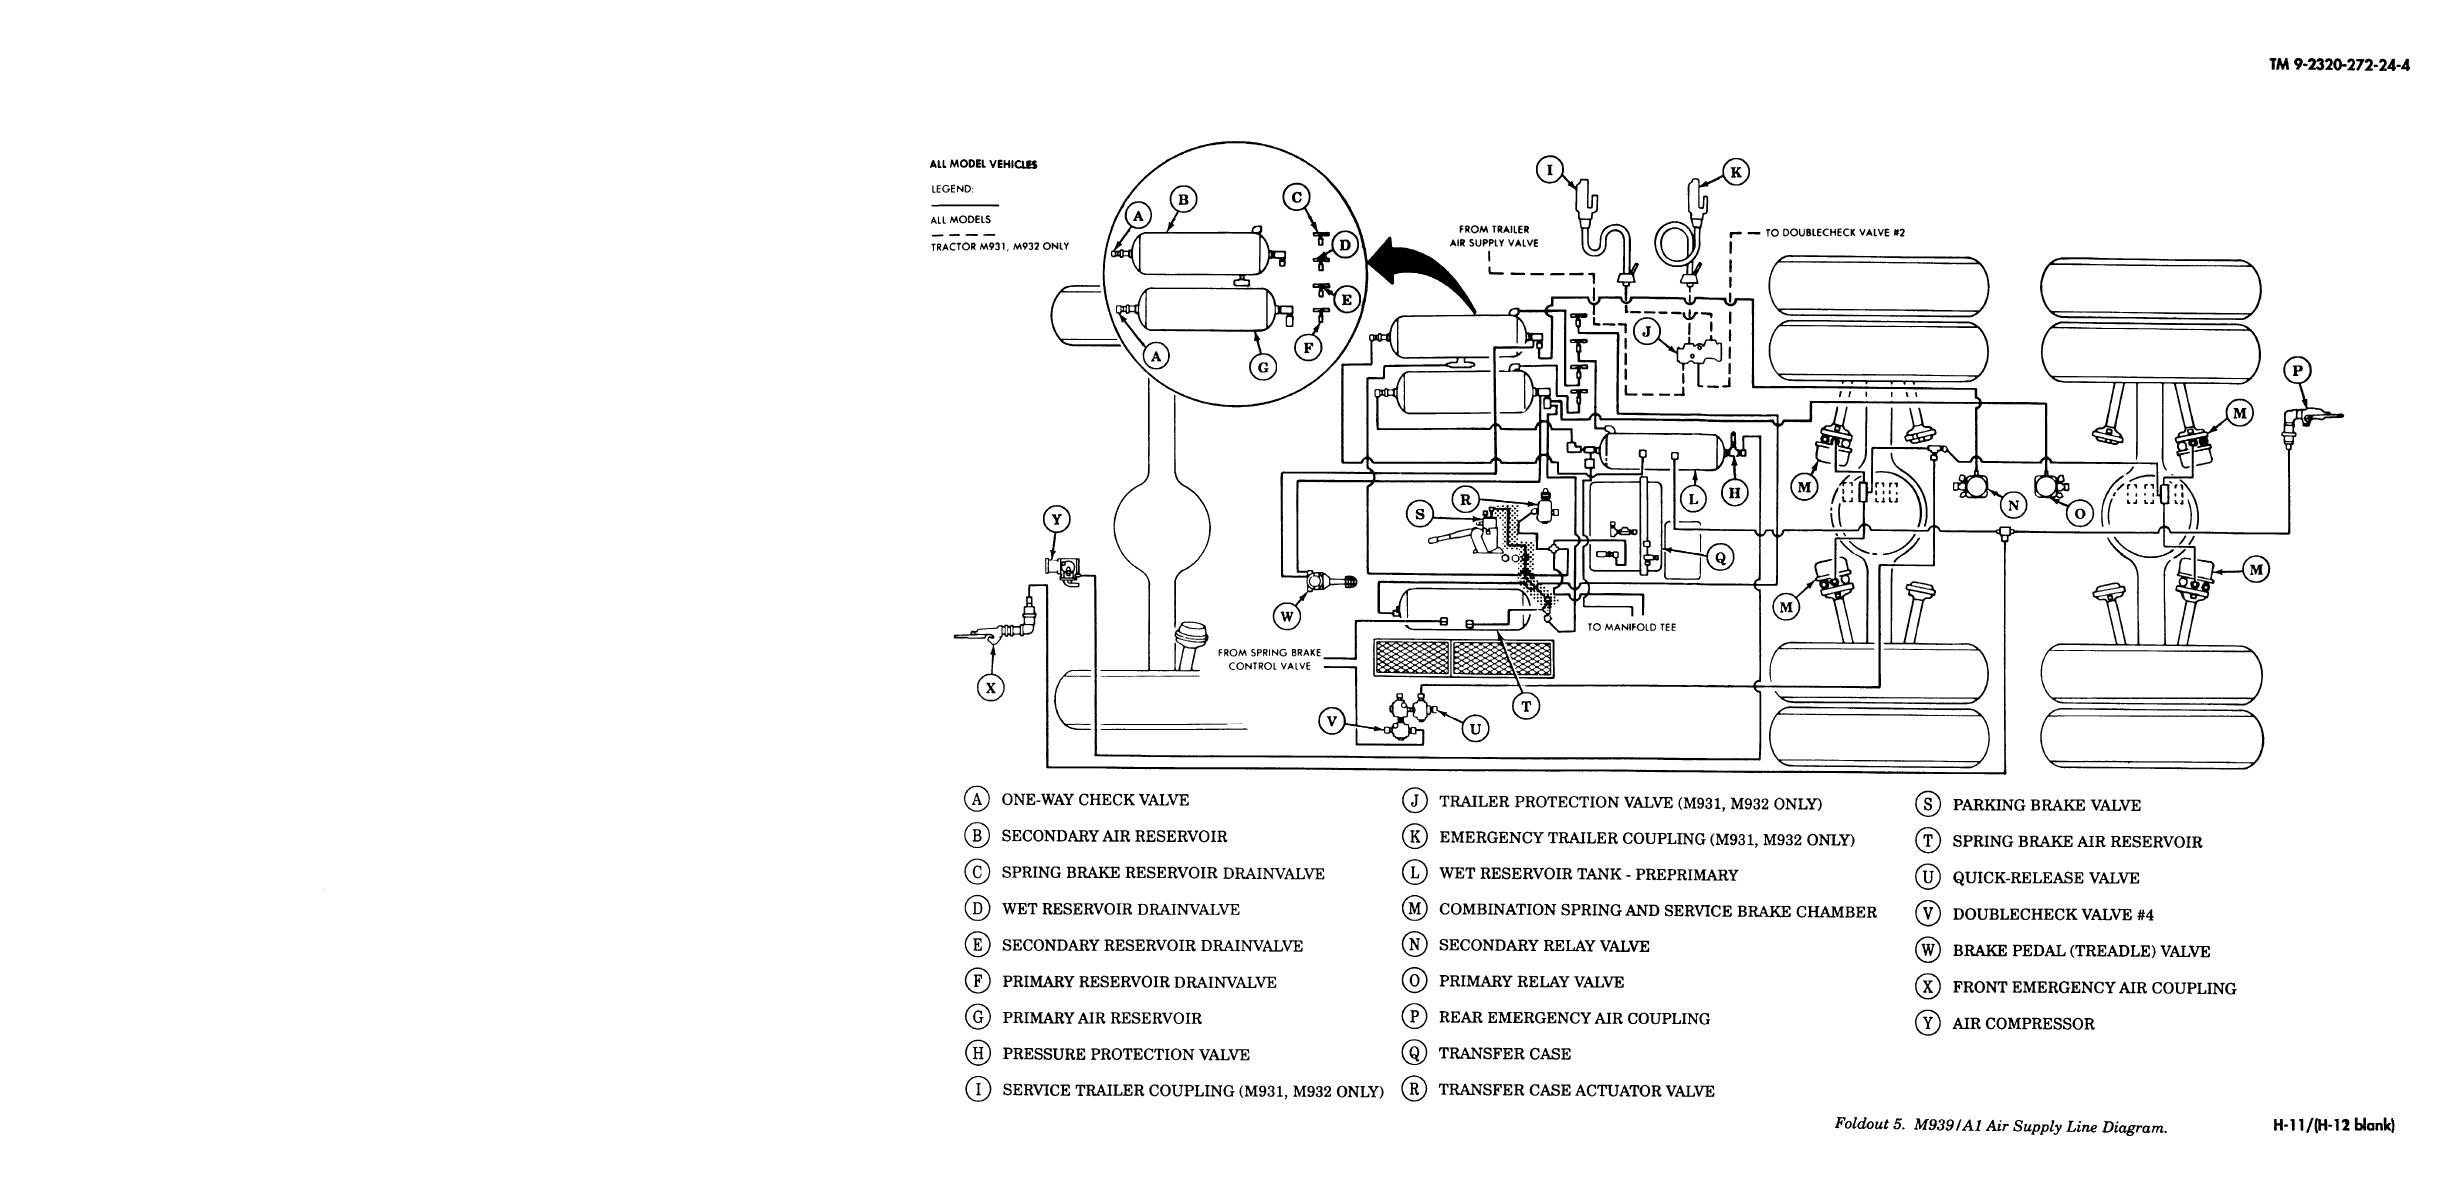 M998 Hmmwv Brakes Wiring Diagram And Fuse Box